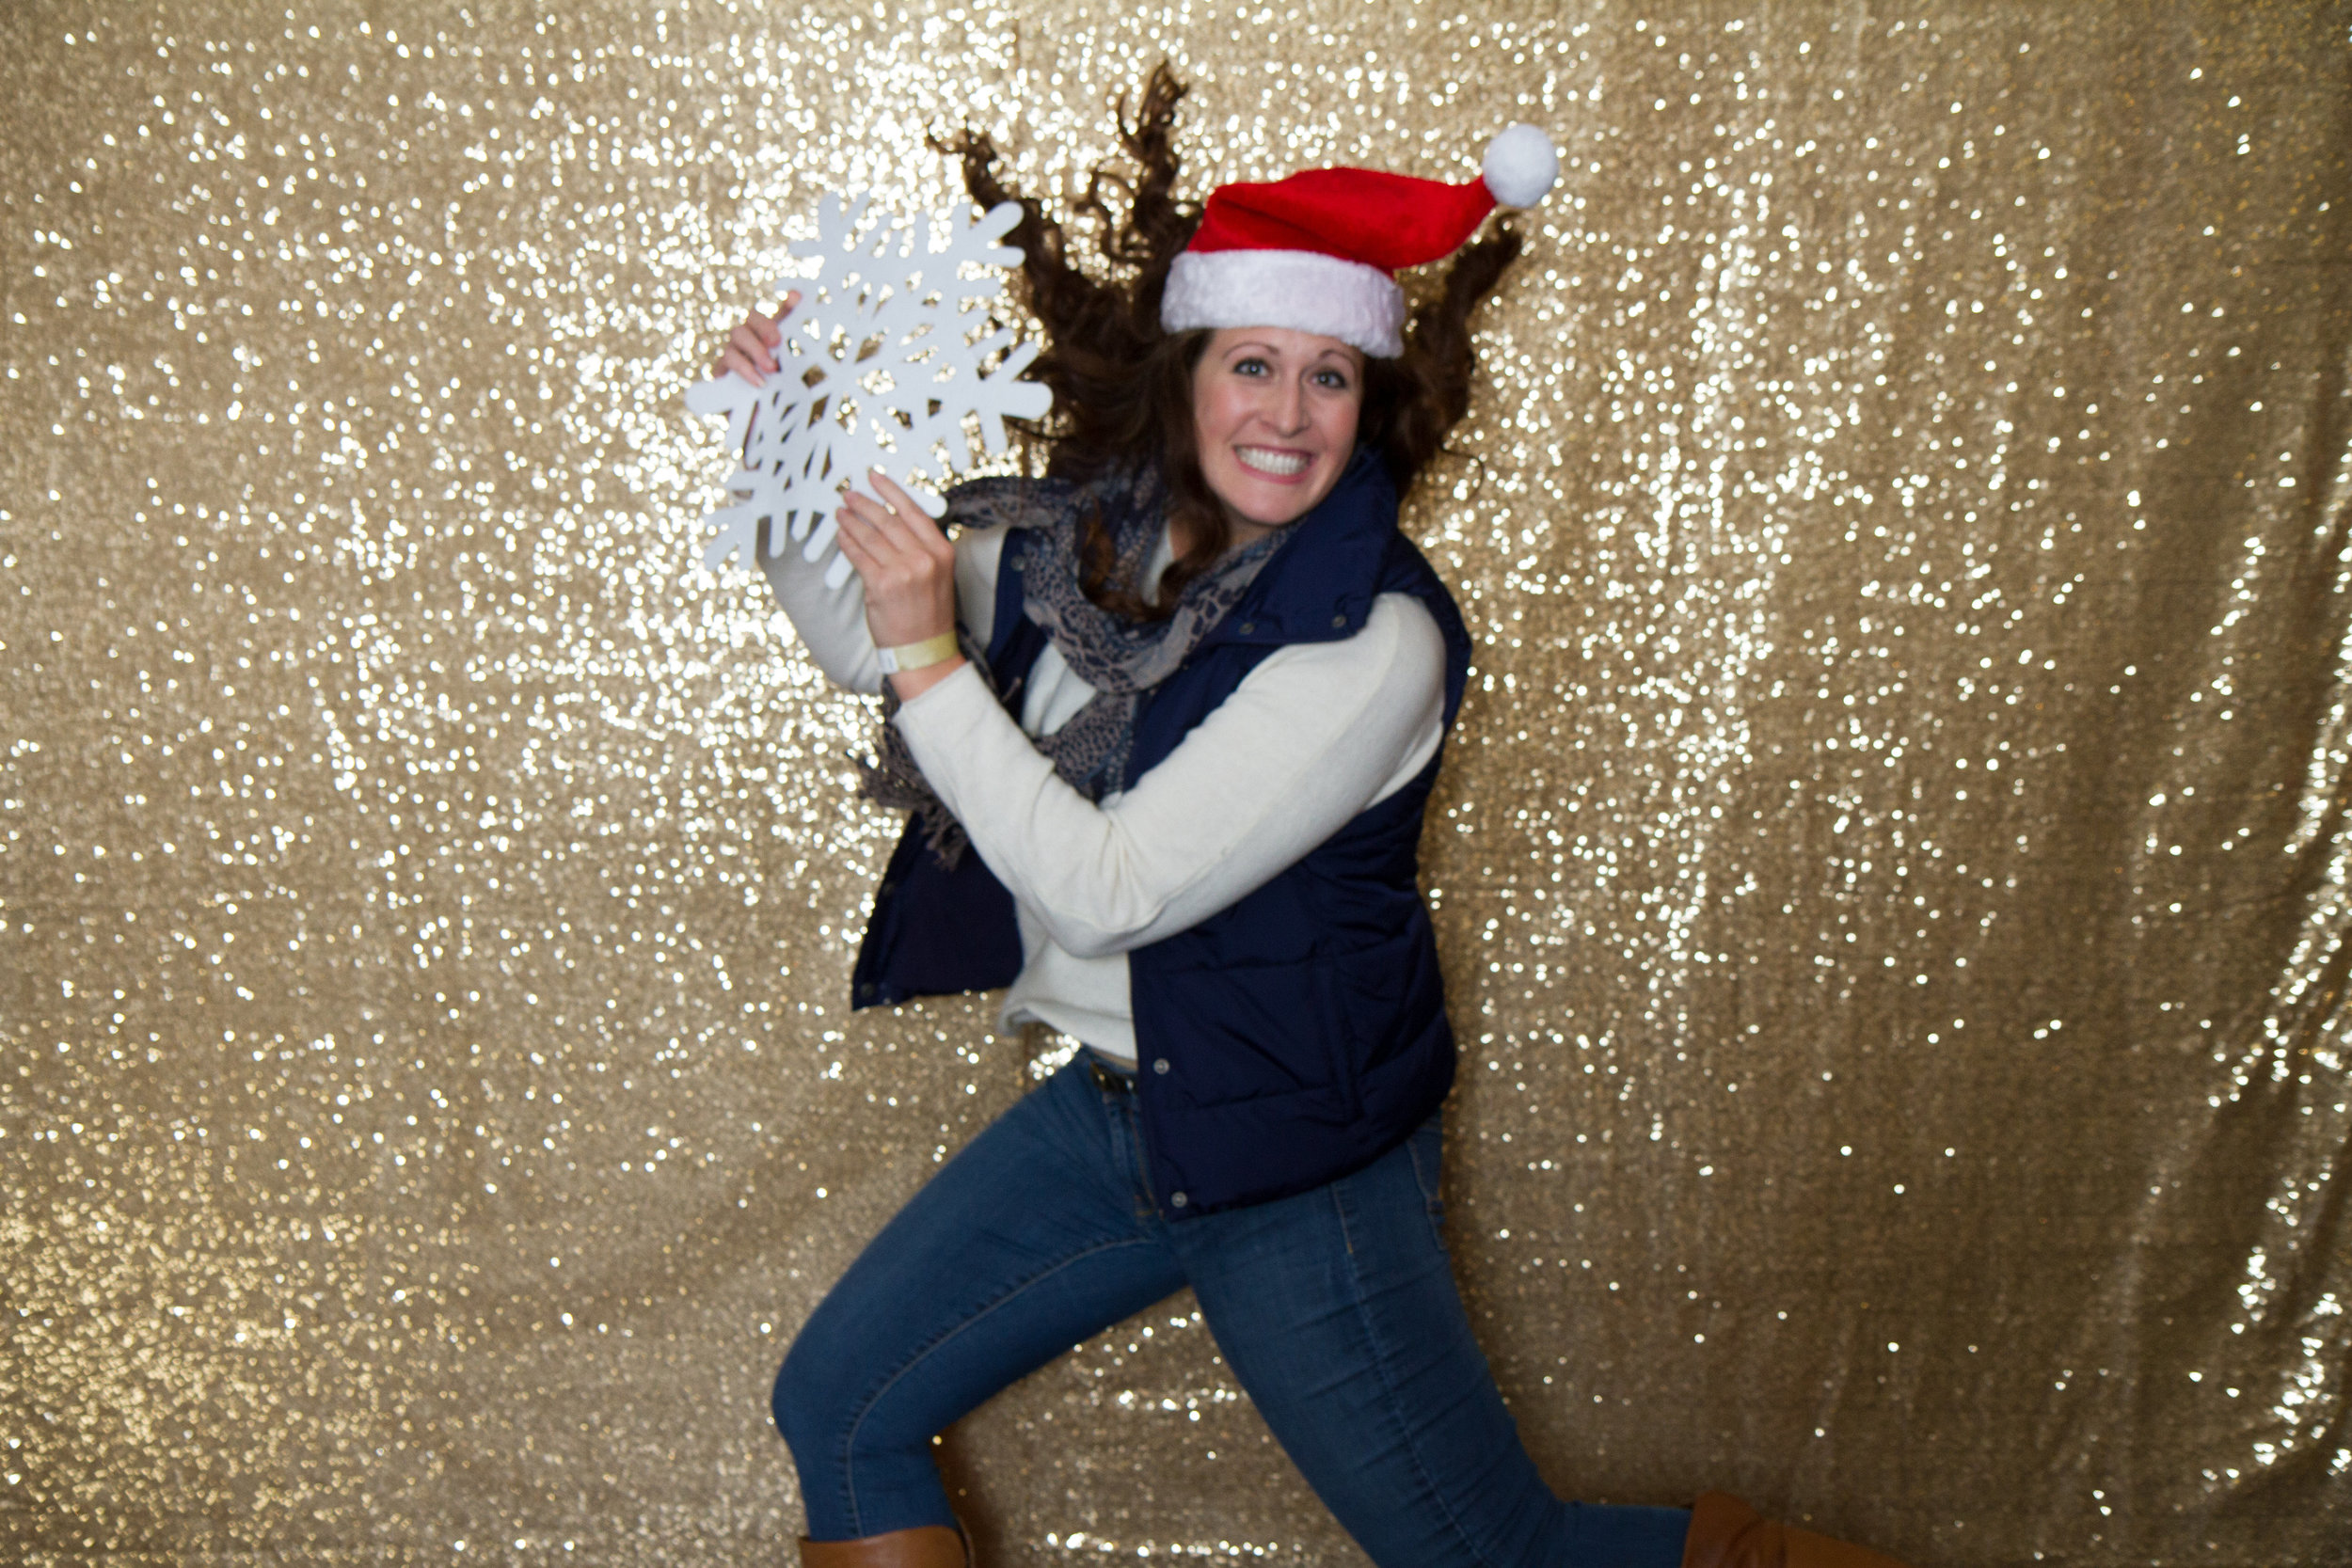 Sparkly Christmas photo booth | MBC Holiday Show and Expo